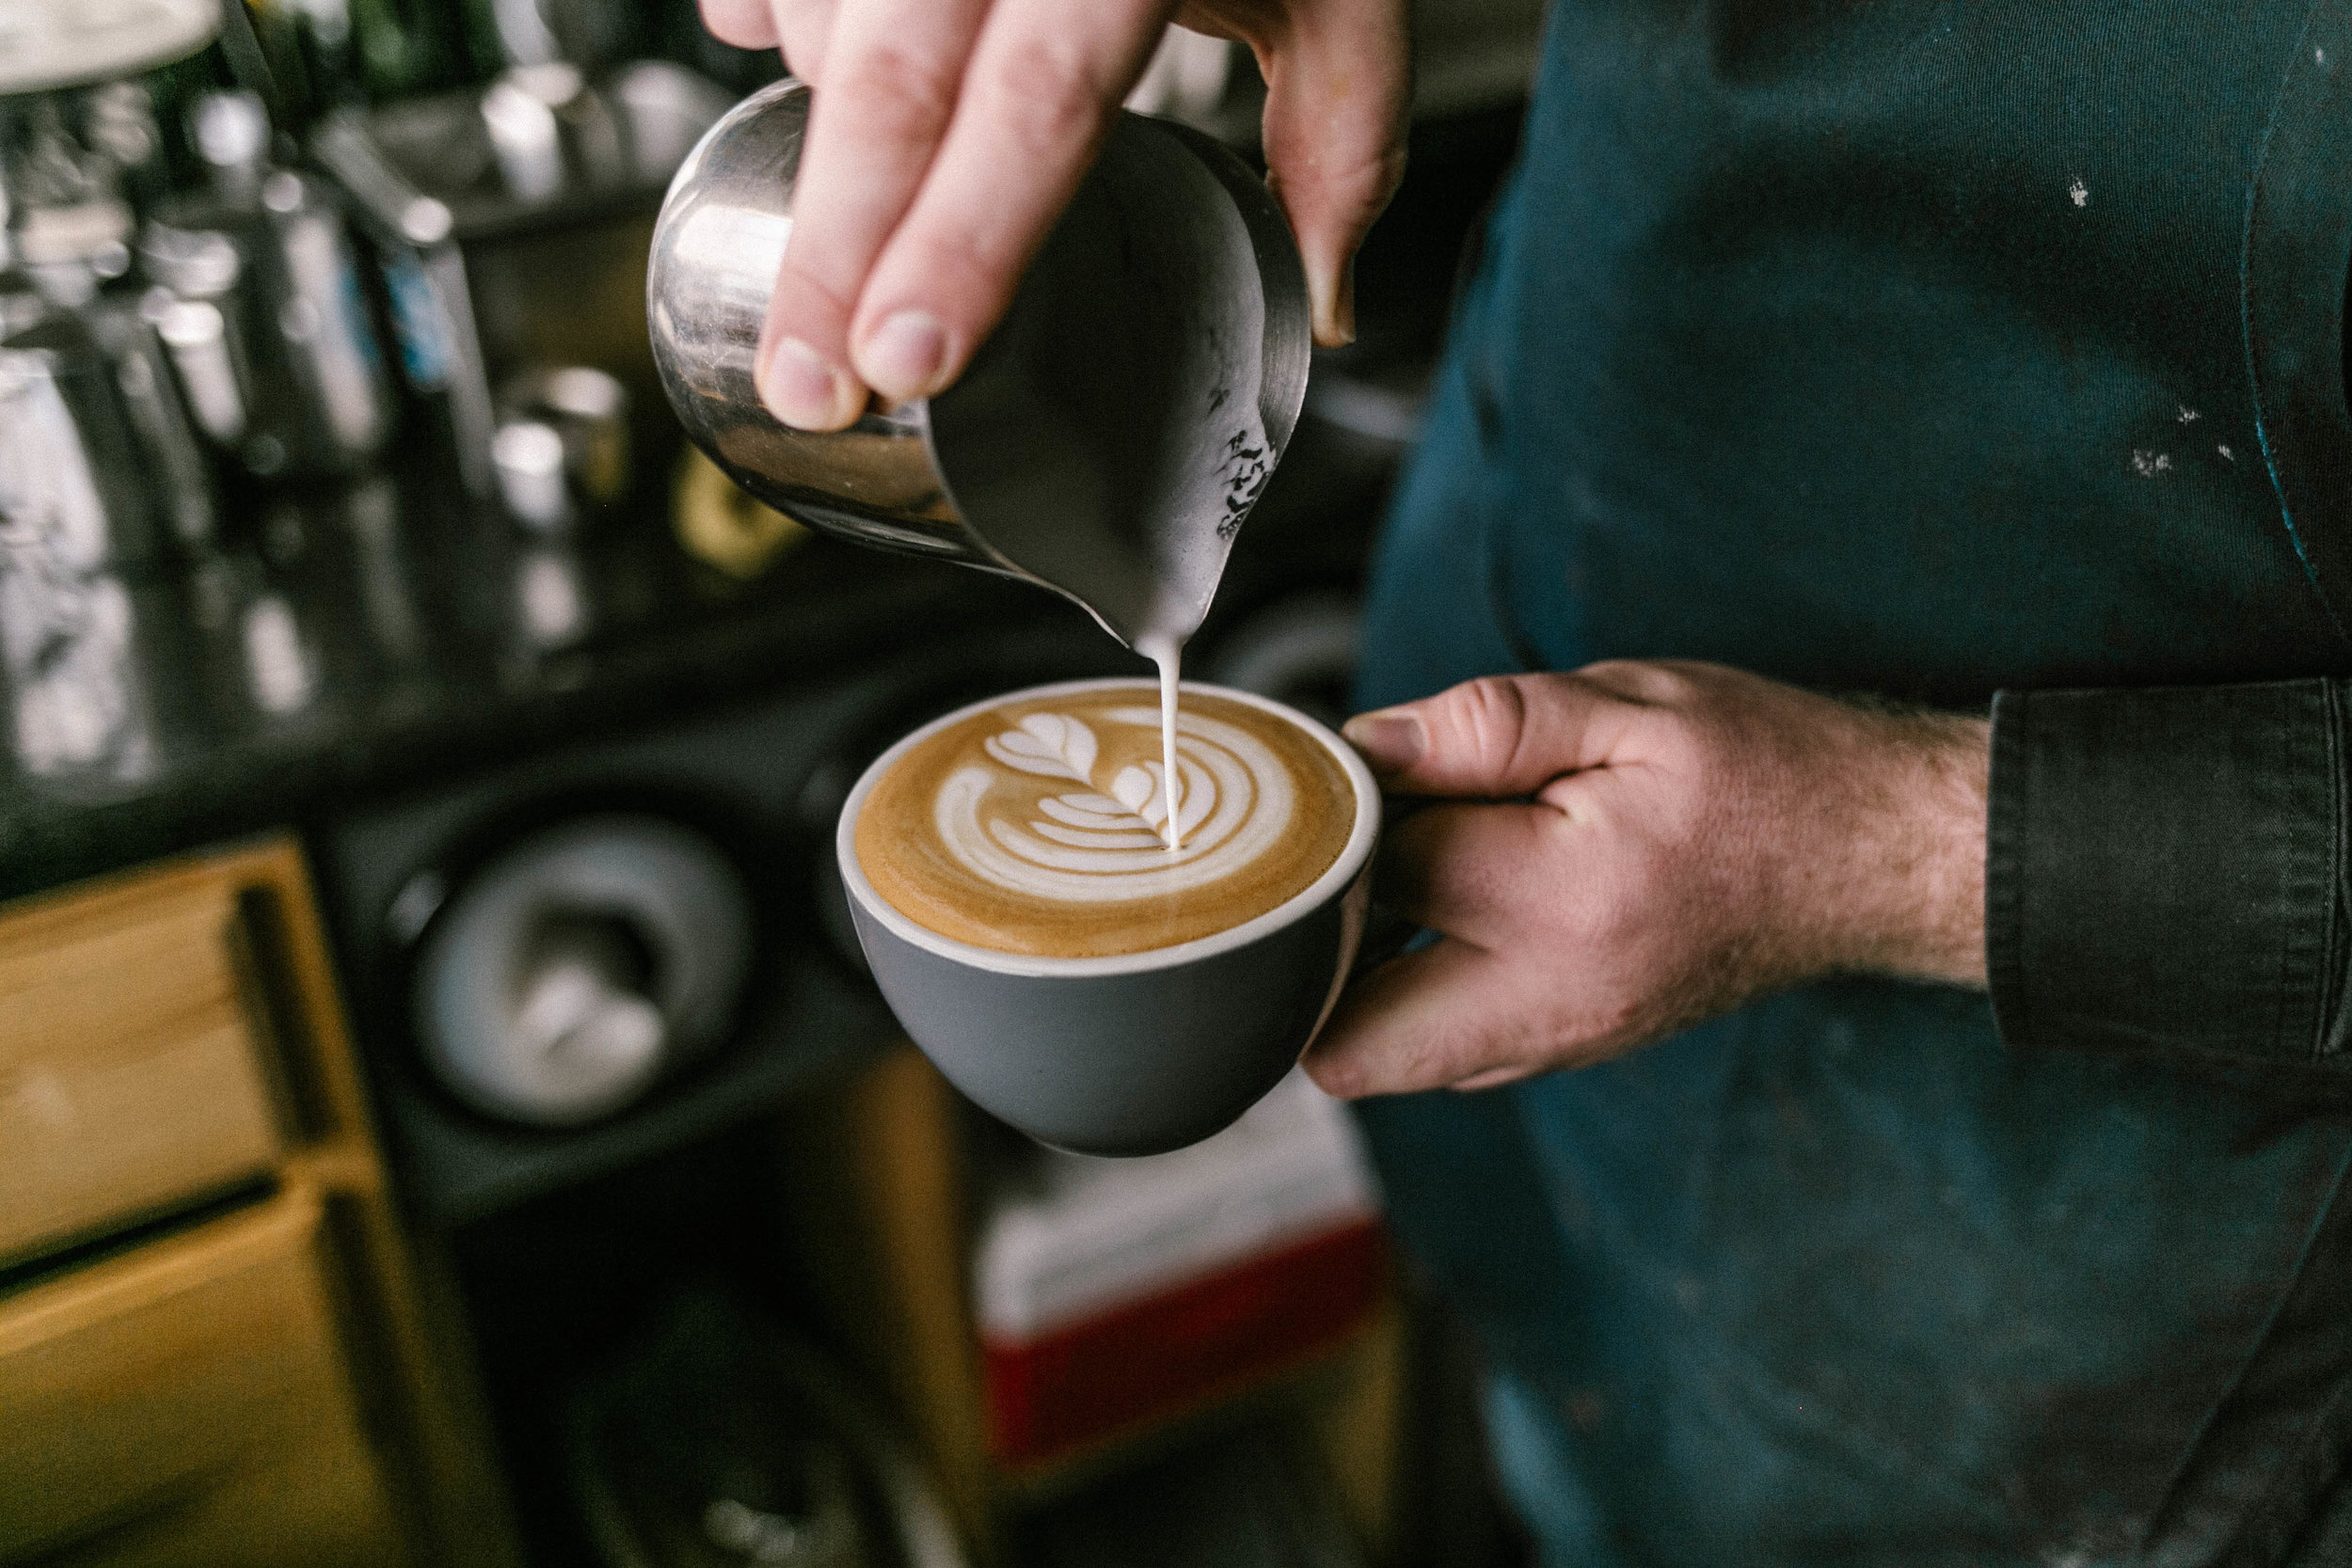 Our recommendation - Specializing in their espresso drinks and pour overs you know you'll always get a great drink. We recommend their weekday breakfast avocado toast or checking our their Barista Collection menu for the most unique coffee drinks in town.